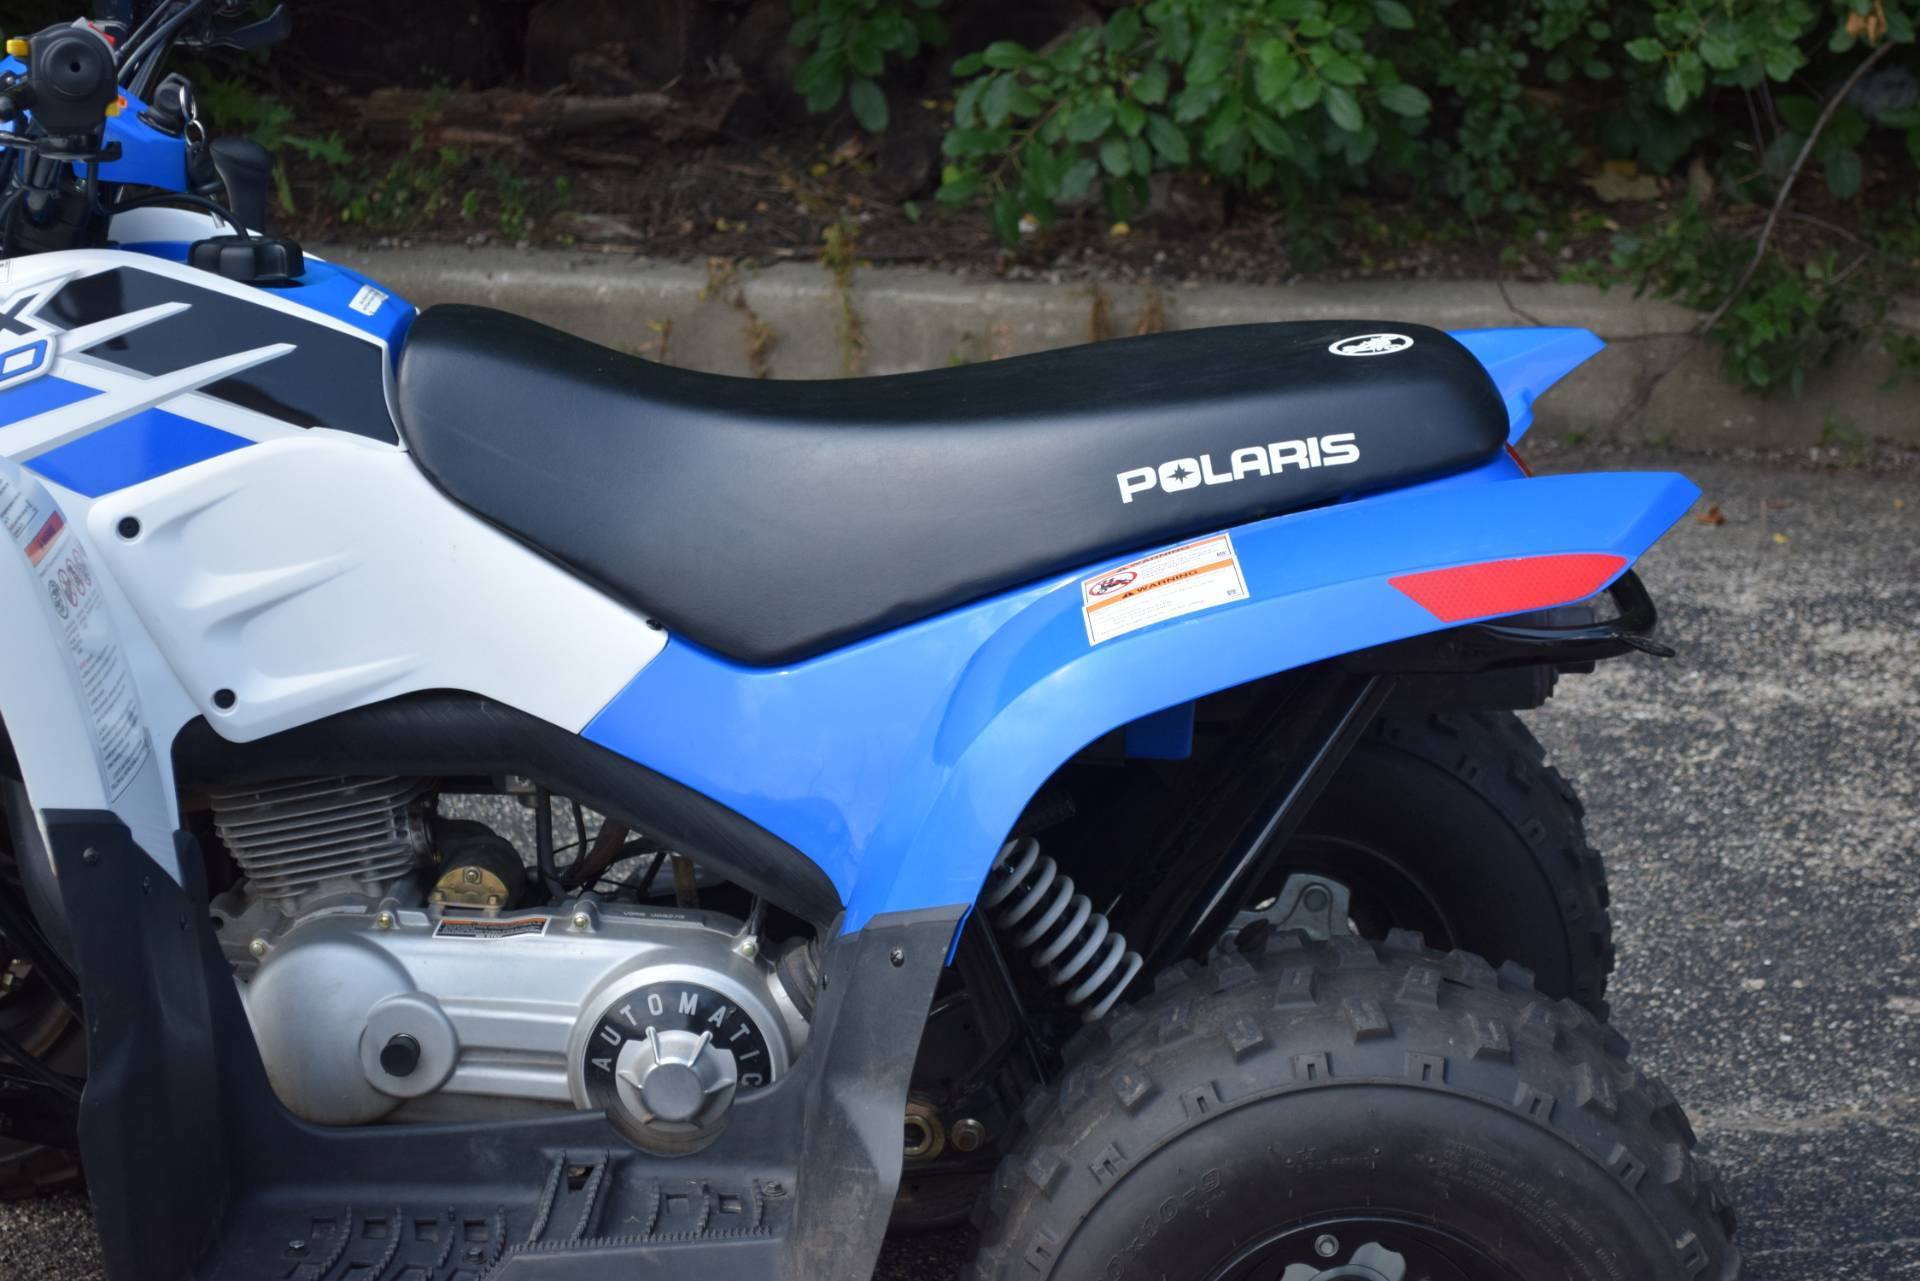 2016 Polaris Phoenix 200 in Wauconda, Illinois - Photo 17